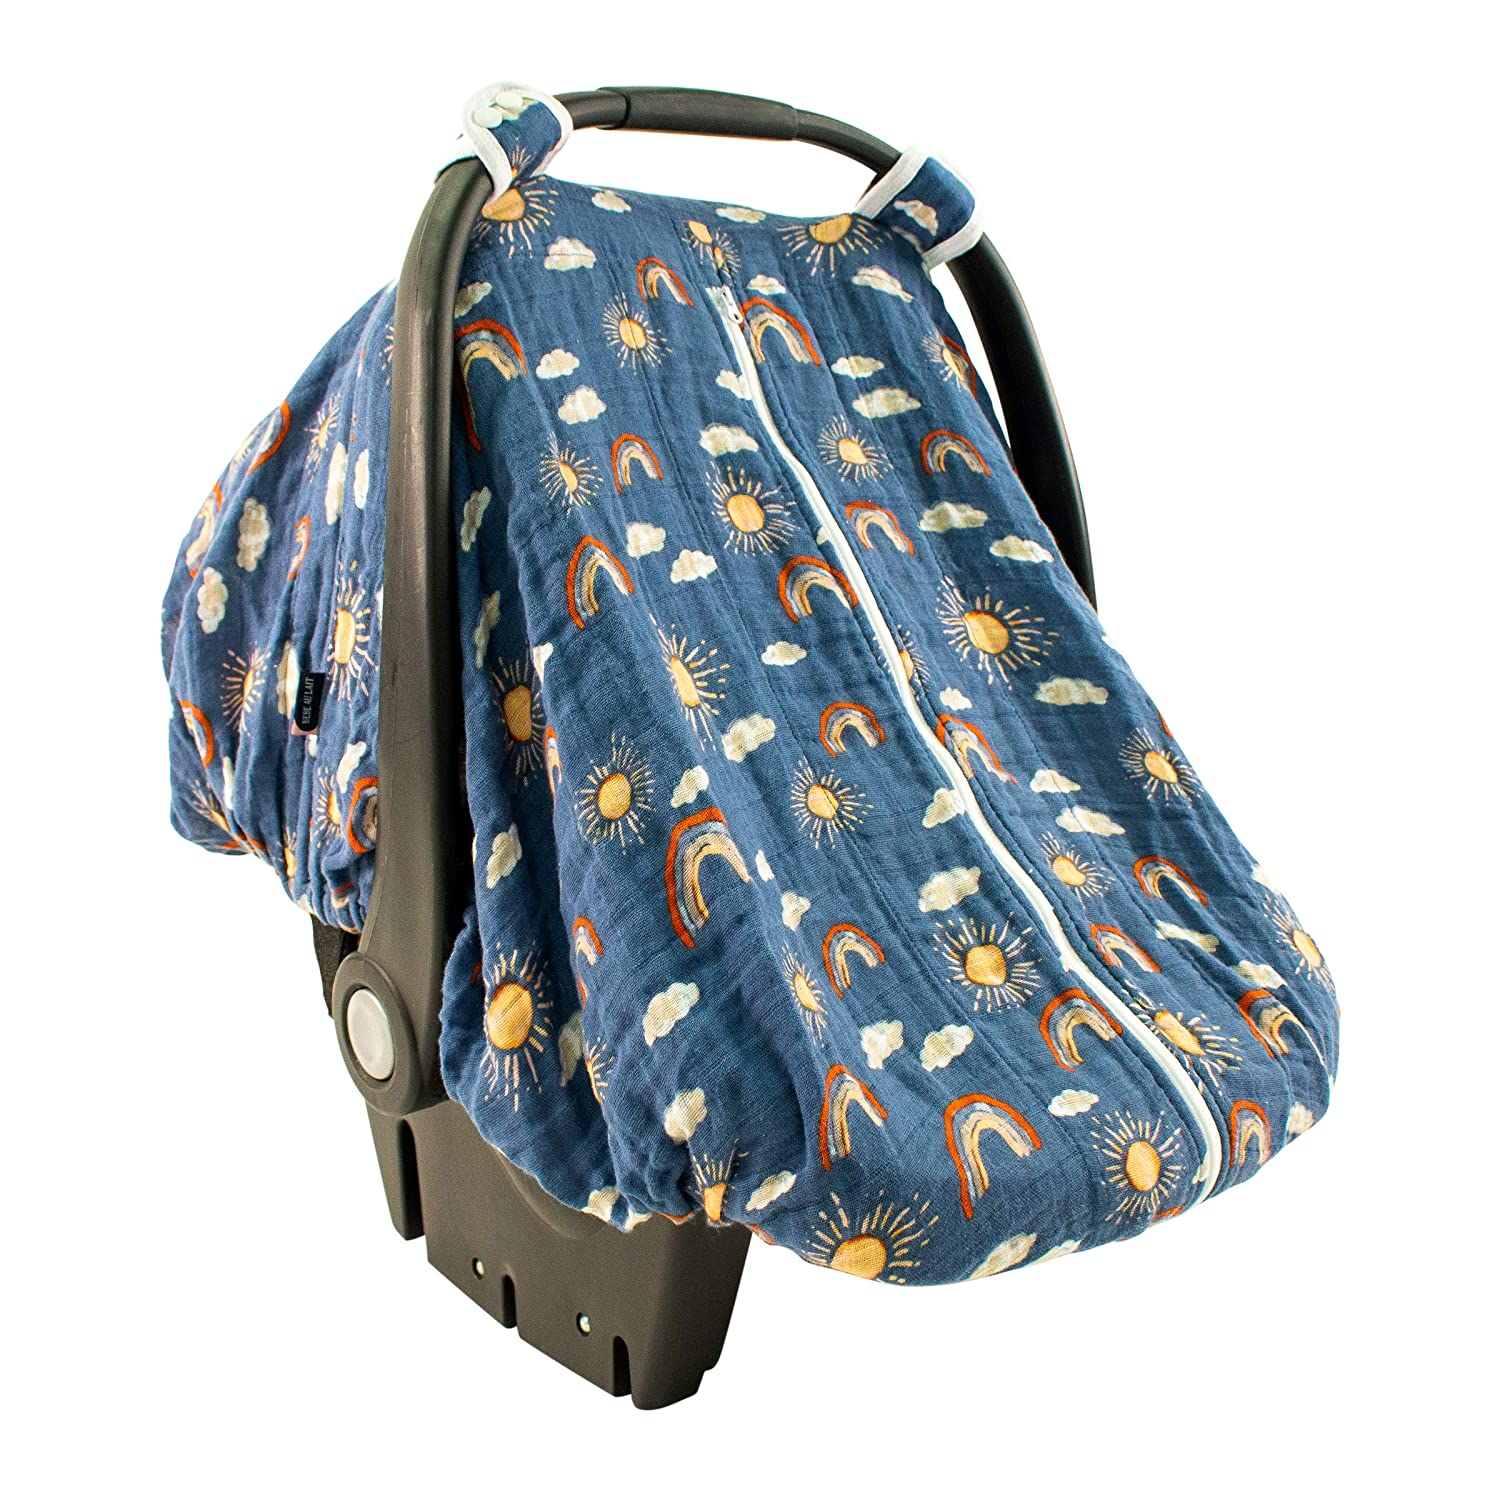 Bebe au Lait Classic Muslin Car Seat Cover, Easy Snap Straps, Fully Zippered Opening - Hello Sunshine